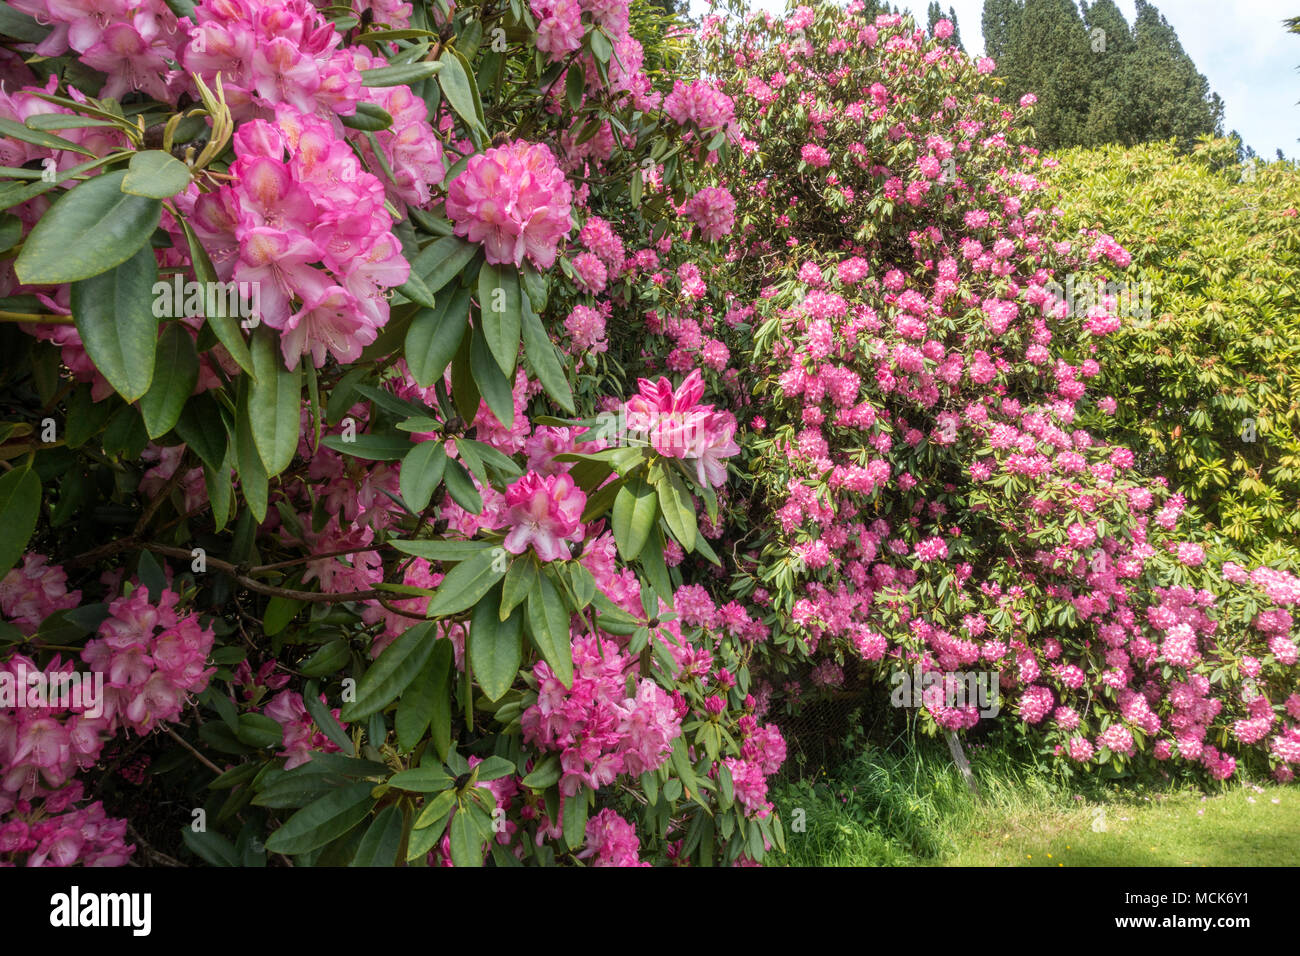 Rhododendron pink flowers large shrub stock photo 179902101 alamy rhododendron pink flowers large shrub mightylinksfo